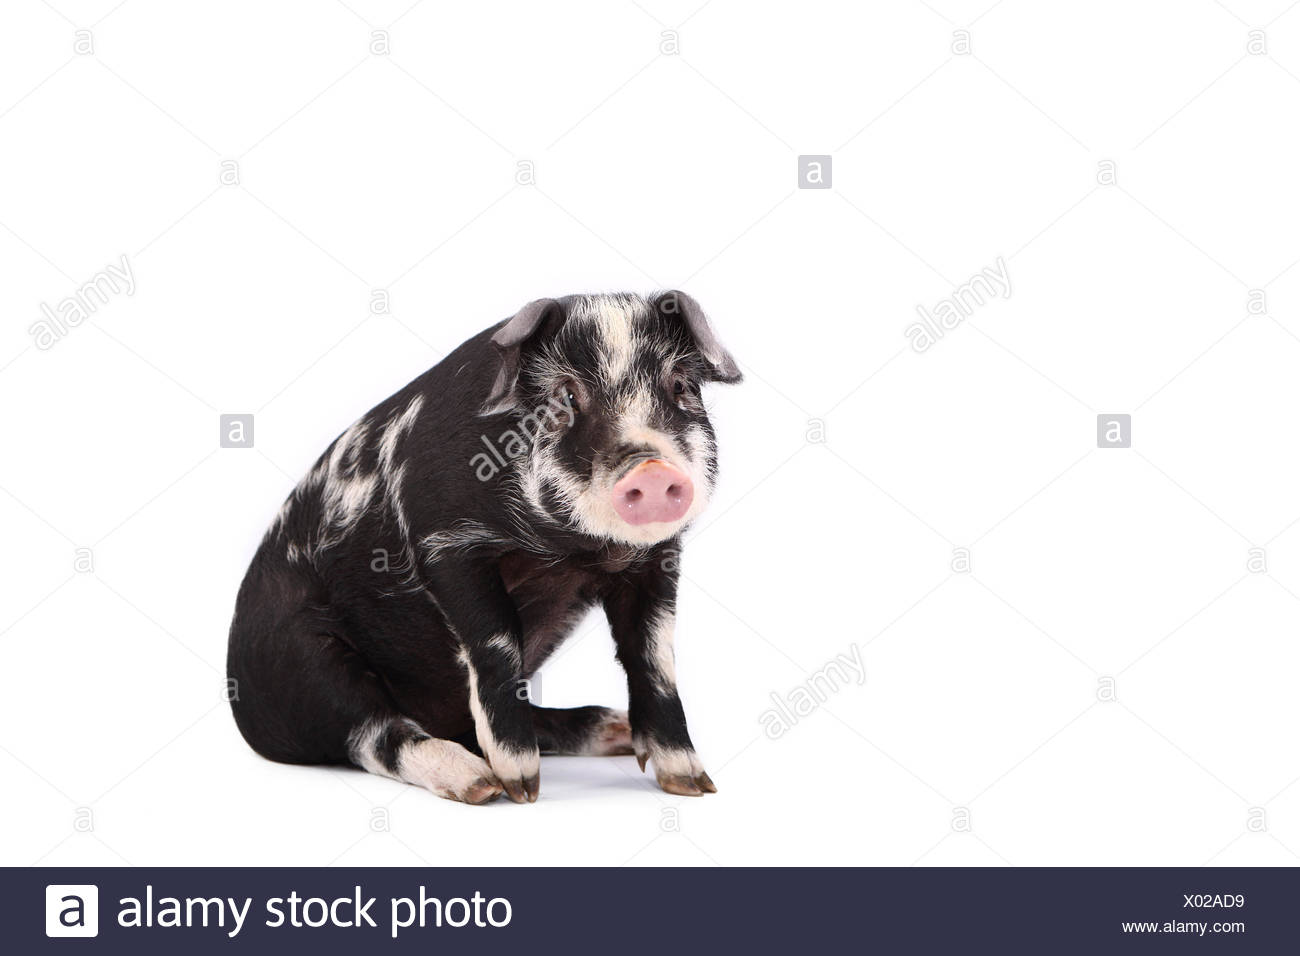 Turopolje Pig. Piglet sitting. Studio picture against a white background. Germany Stock Photo